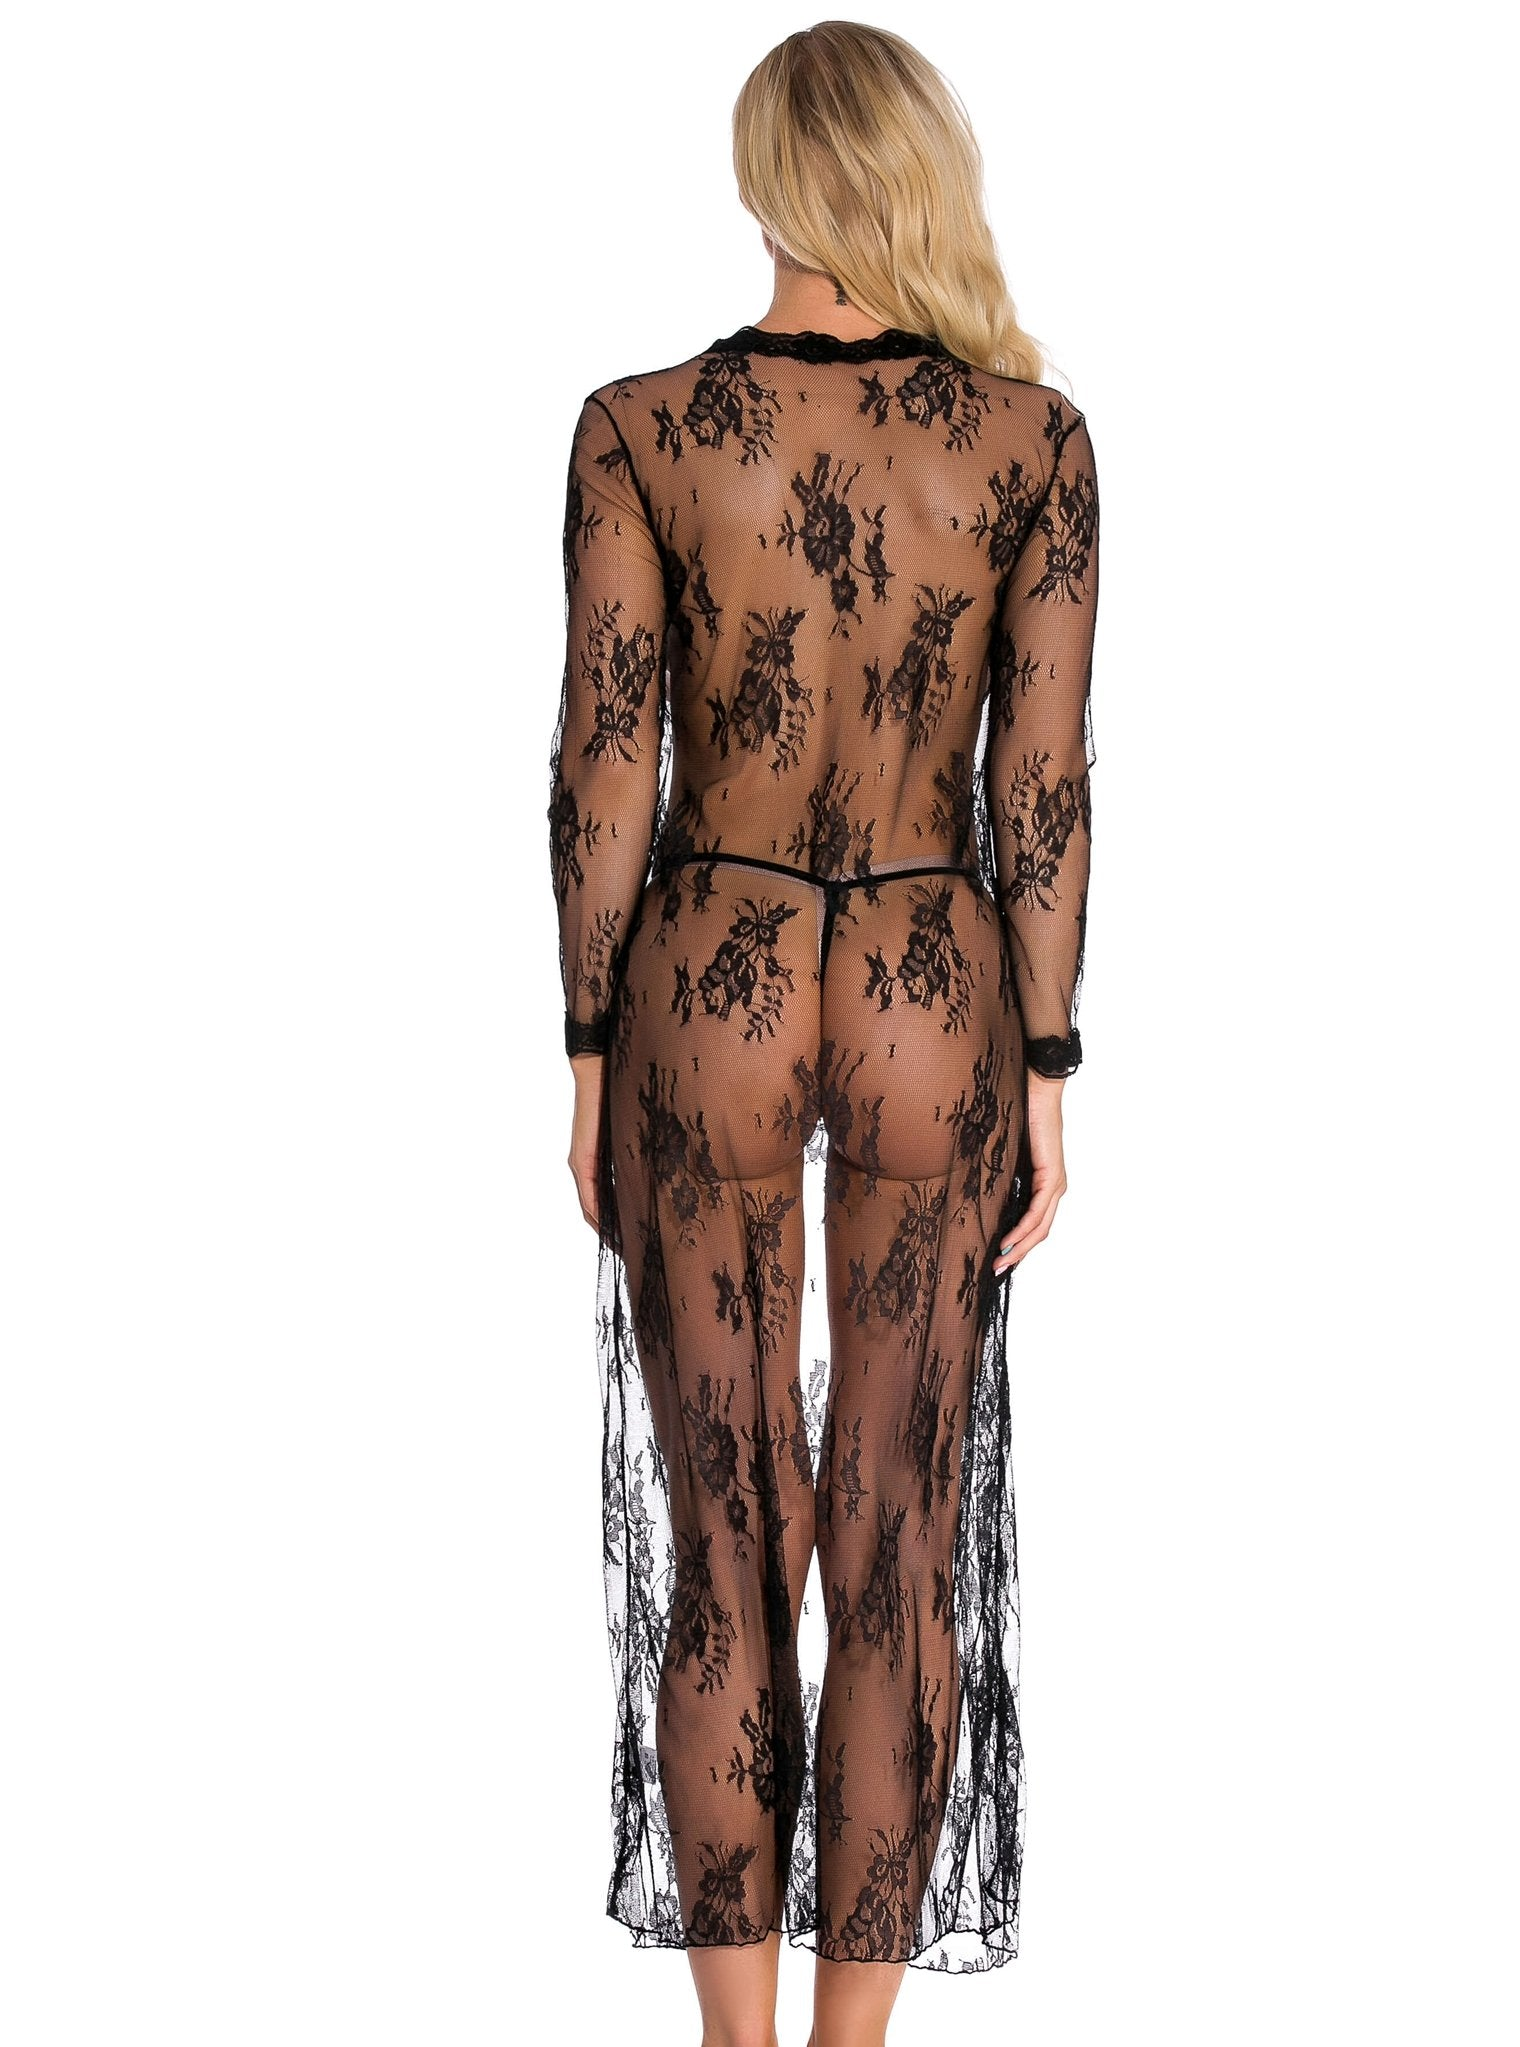 Black Lace Long Sleeve Nightgown - Evalamor